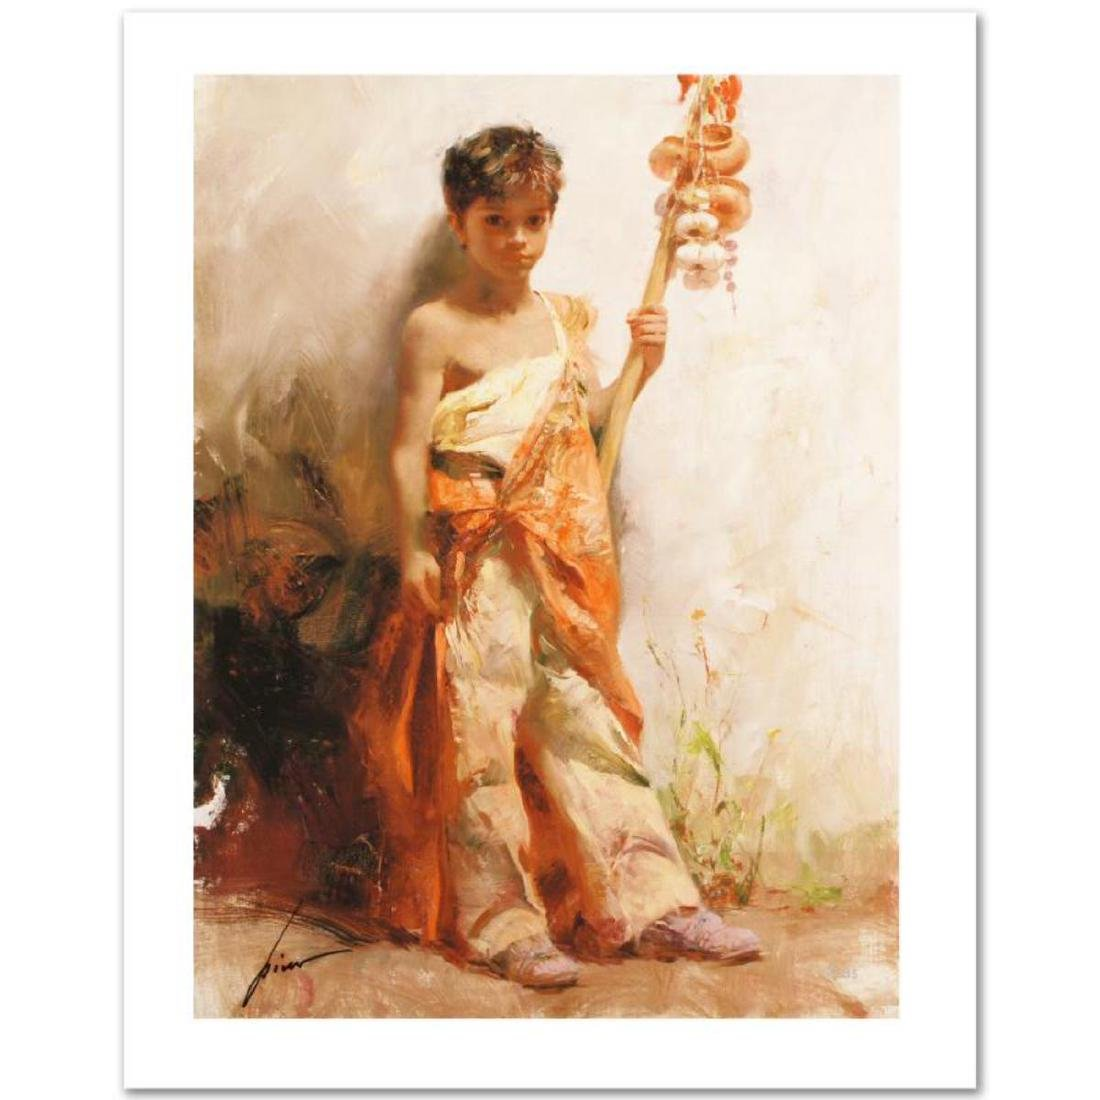 """The Young Peddler"" Limited Edition Giclee by Pino"